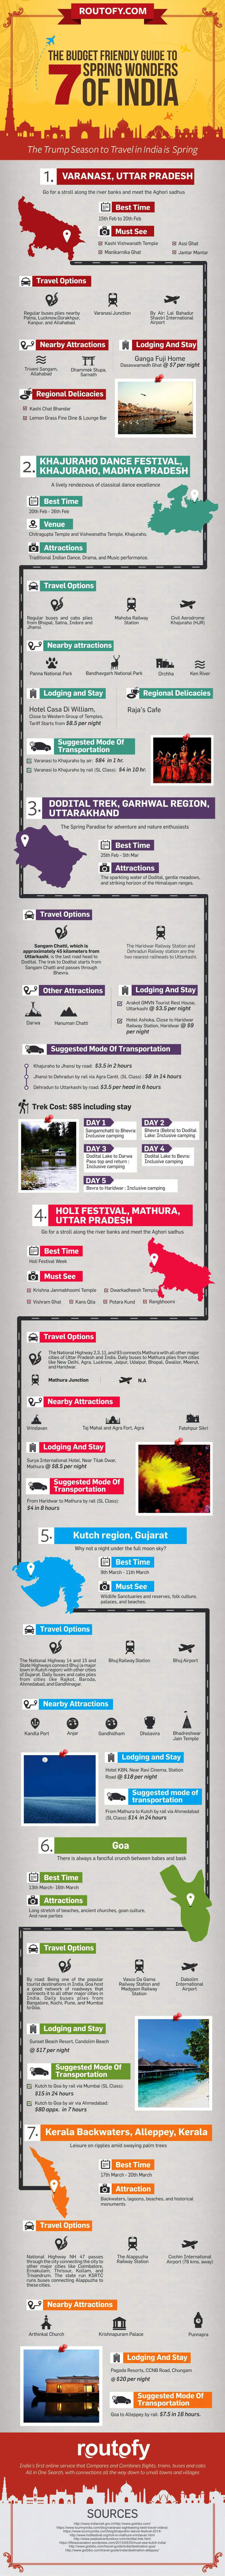 Budget Trips in India during Spring - Travel Infographic